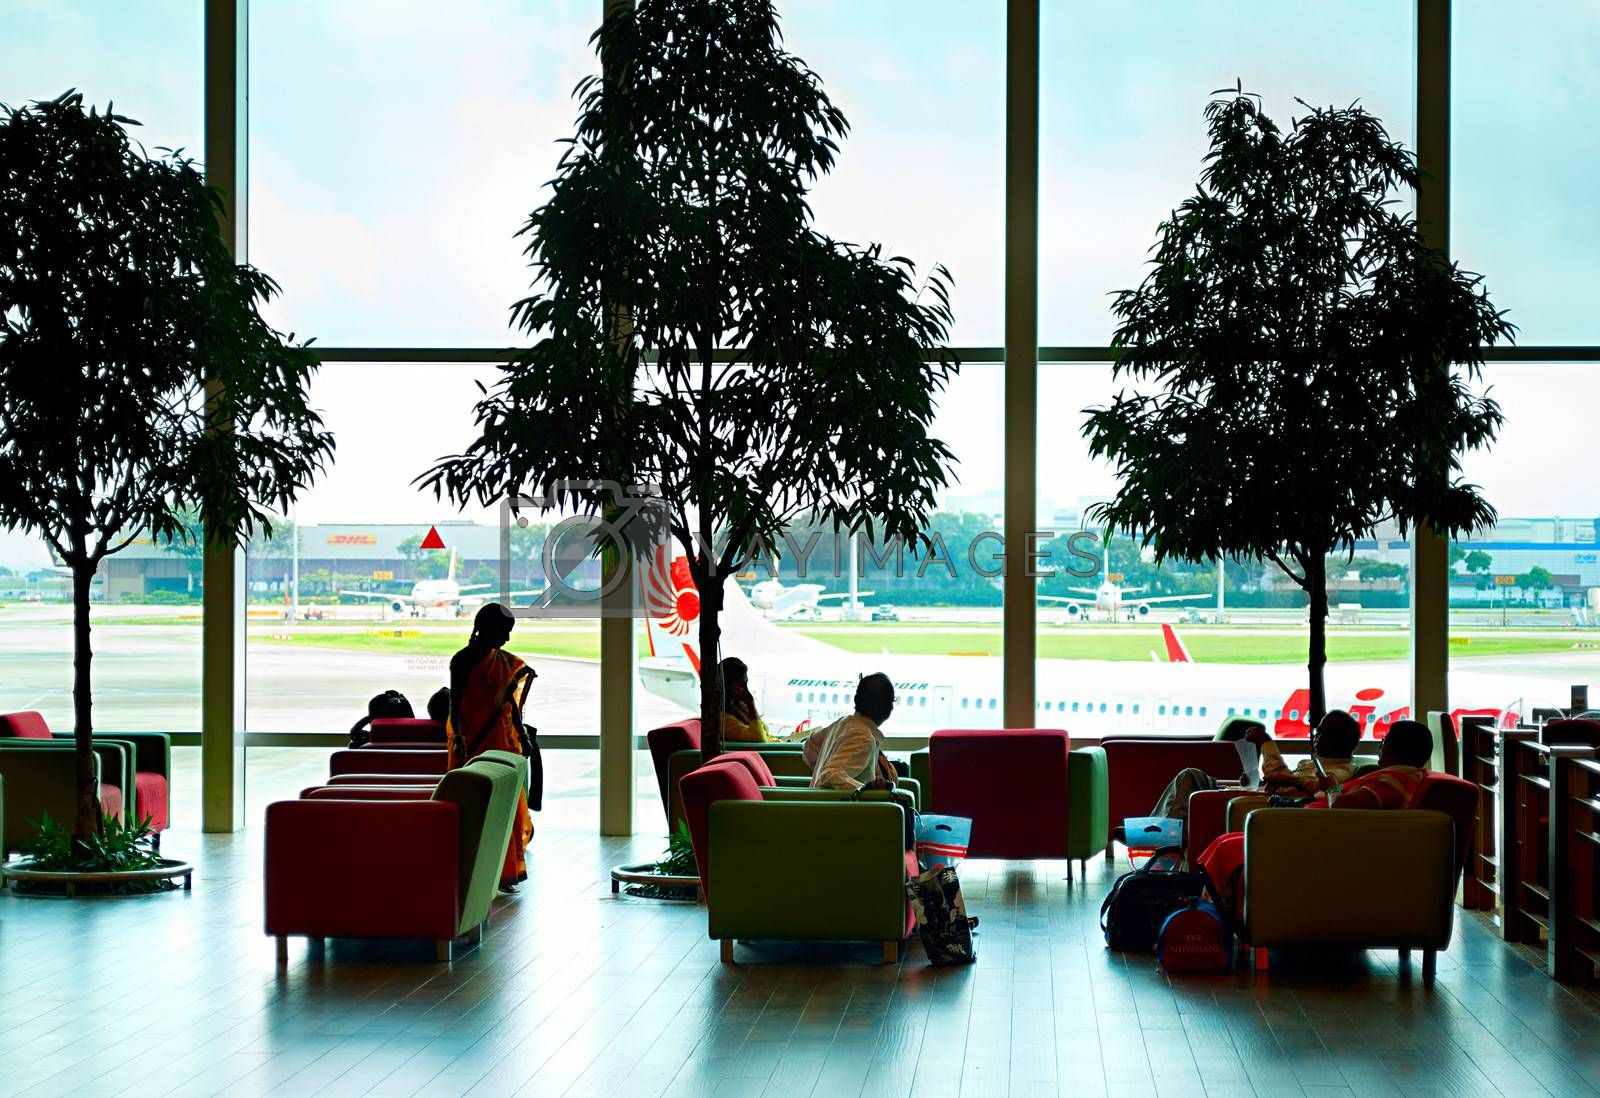 Singapore, Republic of Singapore - March 05, 2013: People at a lounge at Changi International Airport. Changi Airport serves more than 100 airlines operating 6,100 weekly flights connecting Singapore to over 220 cities